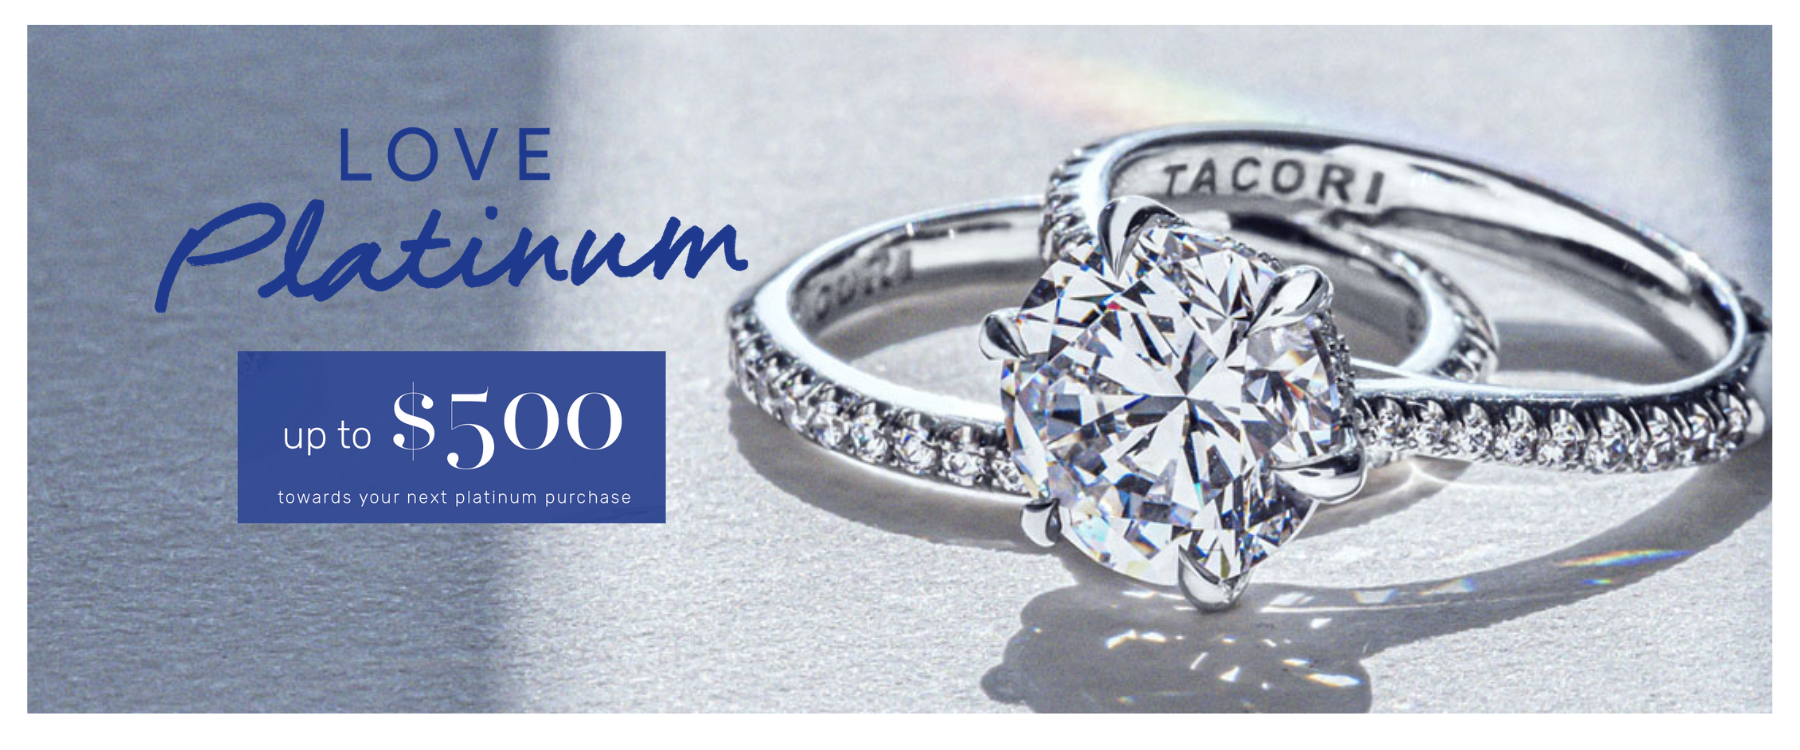 Your Widget Header Text Goes Here This banner image is 1600 x 600 pixels on desktop Peter & Co. Jewelers Avon Lake, OH